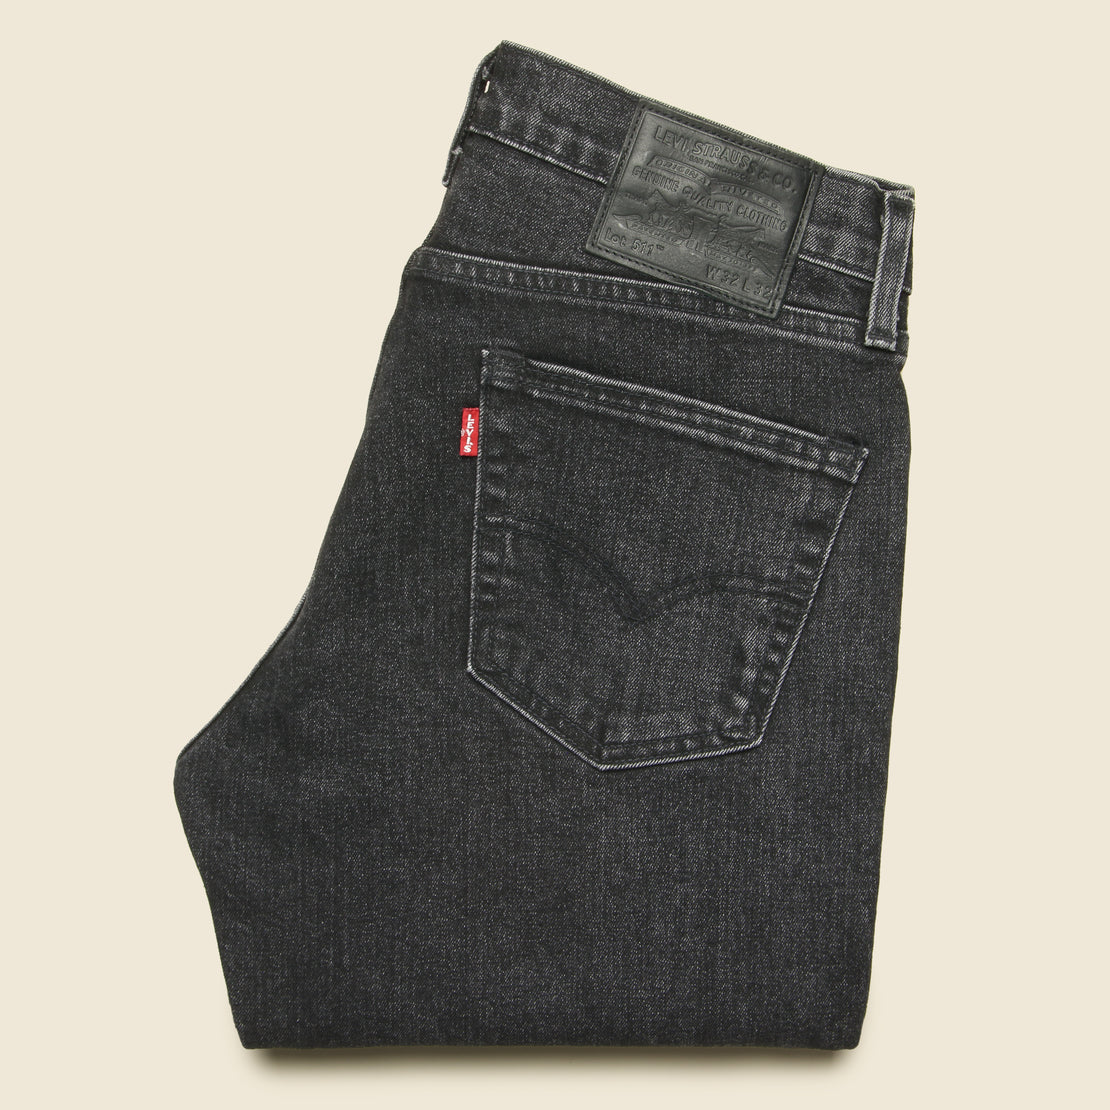 511 Slim Fit Jean - Chile Warm